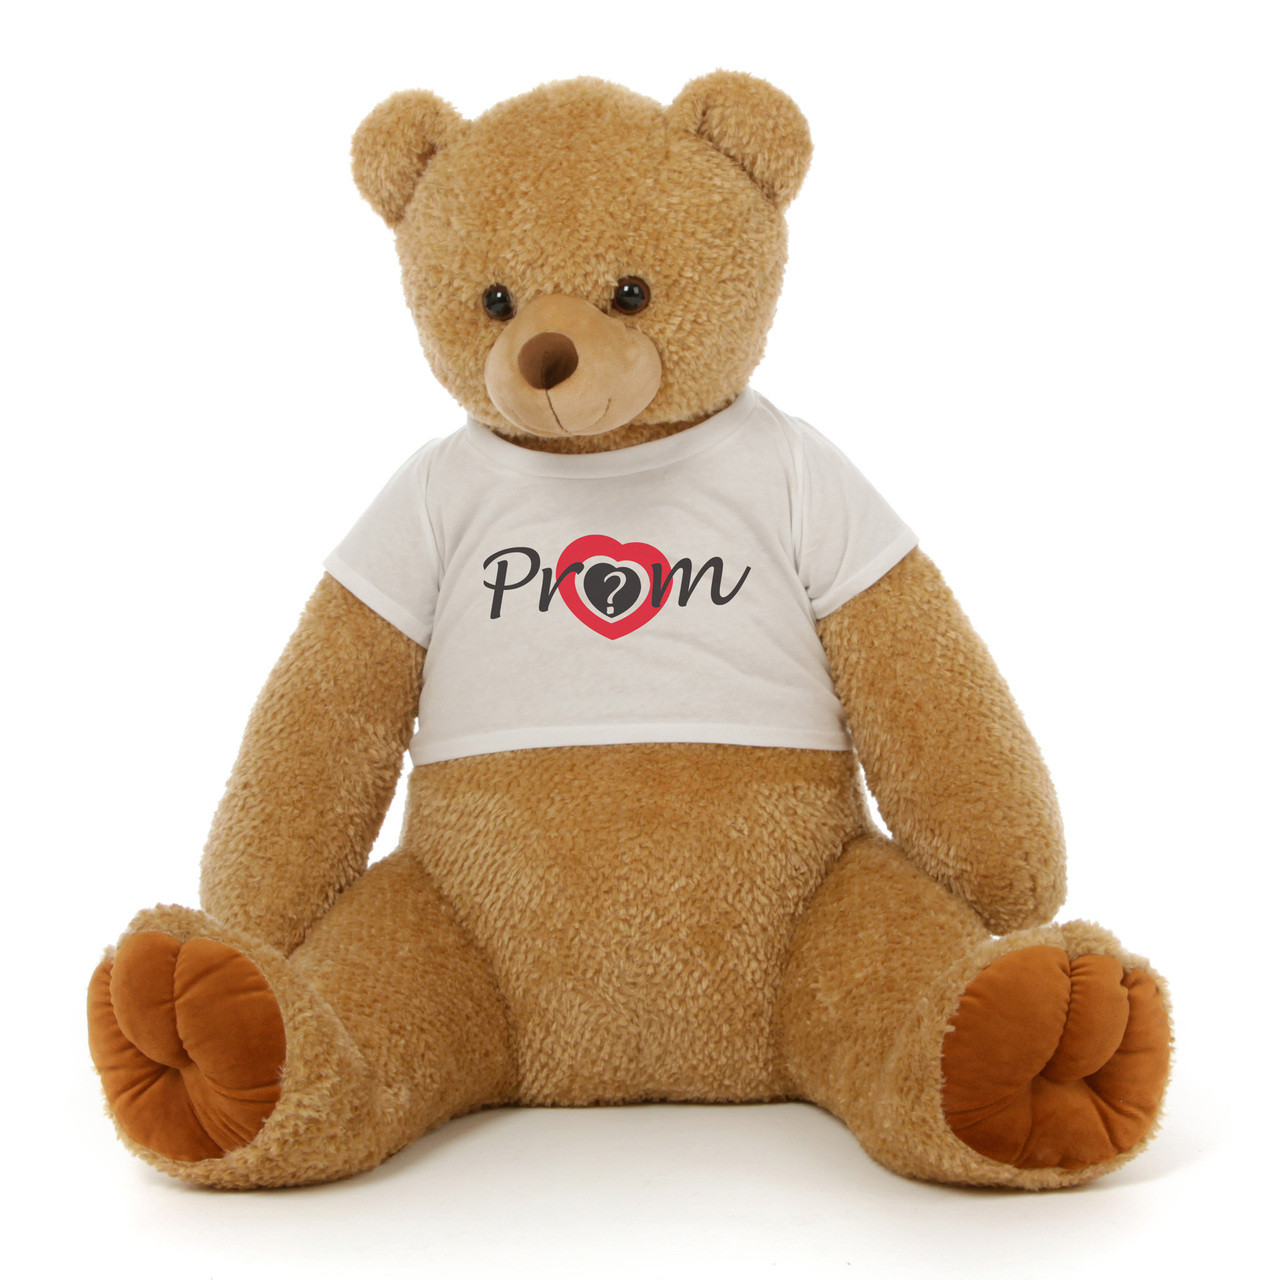 3½ ft Honey Tubs Adorable Amber Brown Prom Teddy Bear (Prom? - Heart Target)